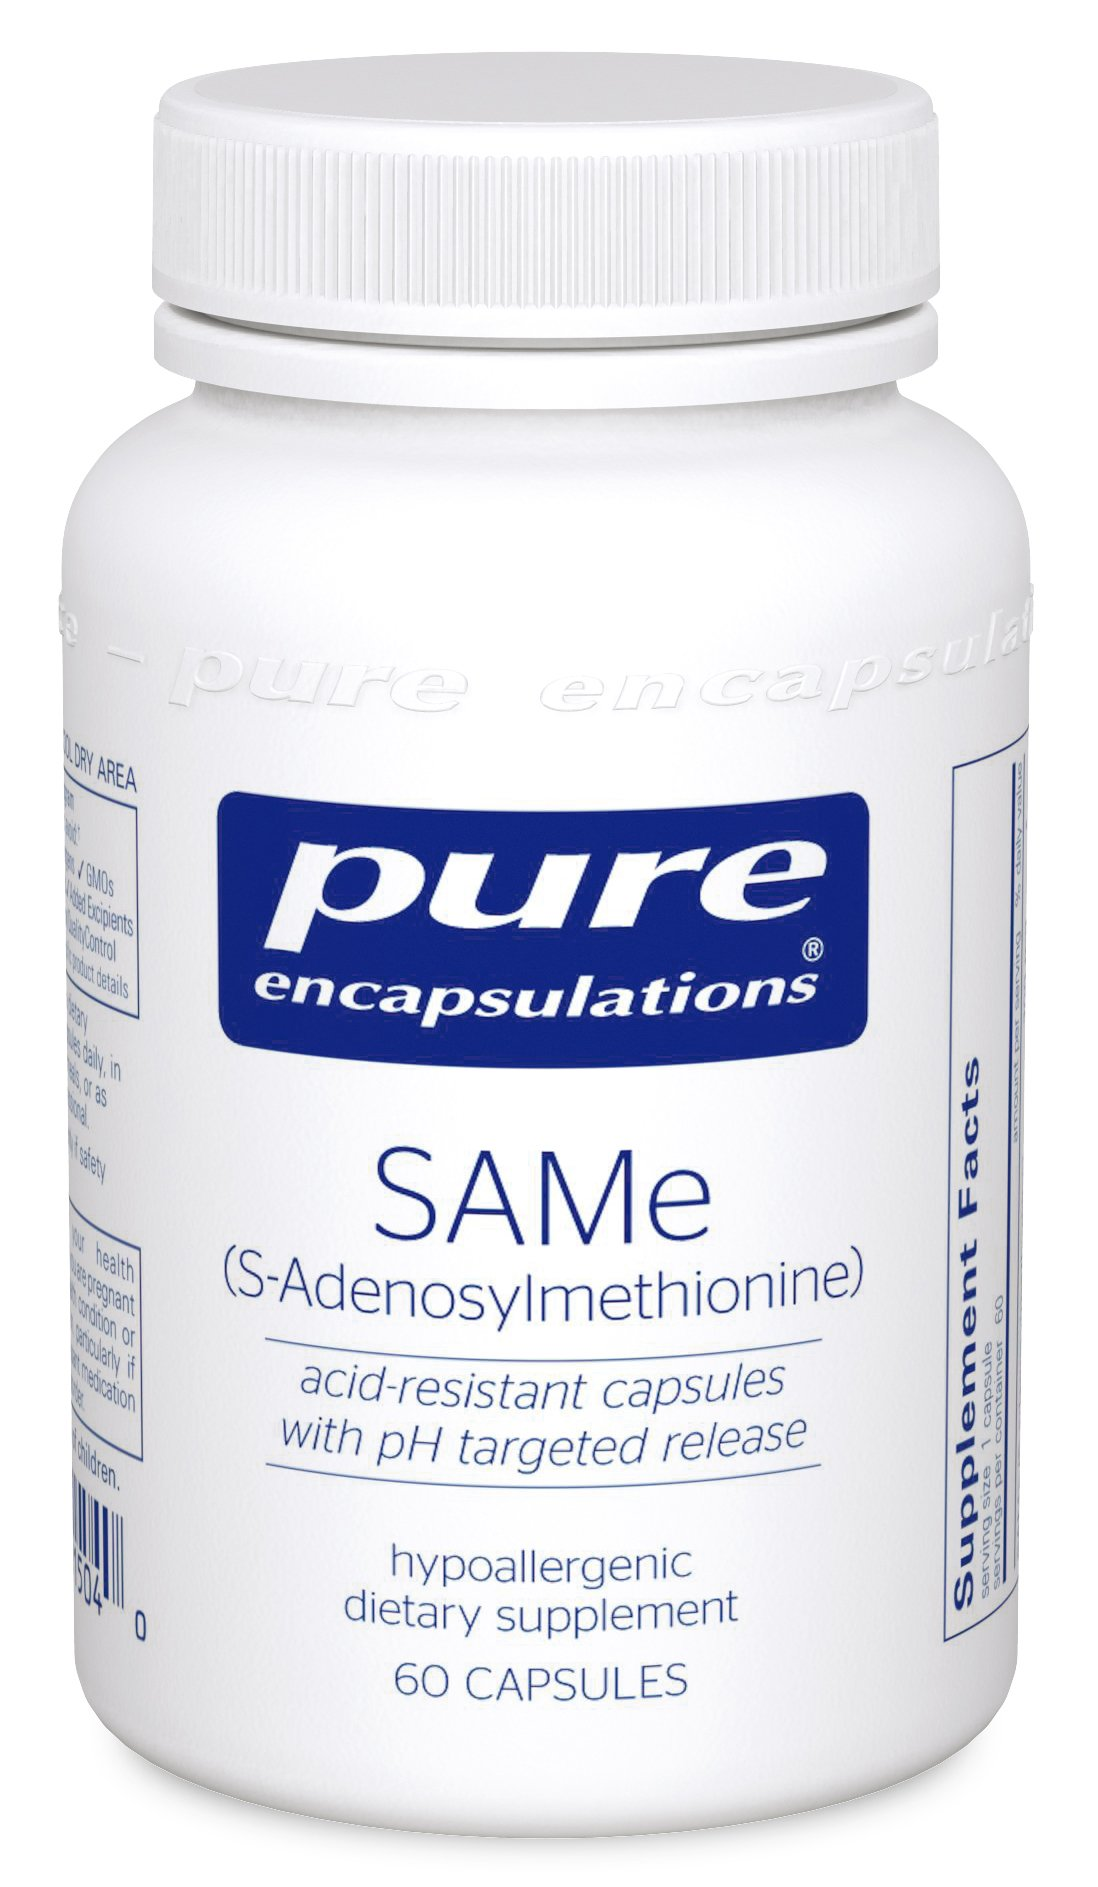 Pure Encapsulations - SAMe (S-Adenosylmethionine) - Hypoallergenic Supplement to Support Positive Mood and Cognitive Function* - 60 Capsules